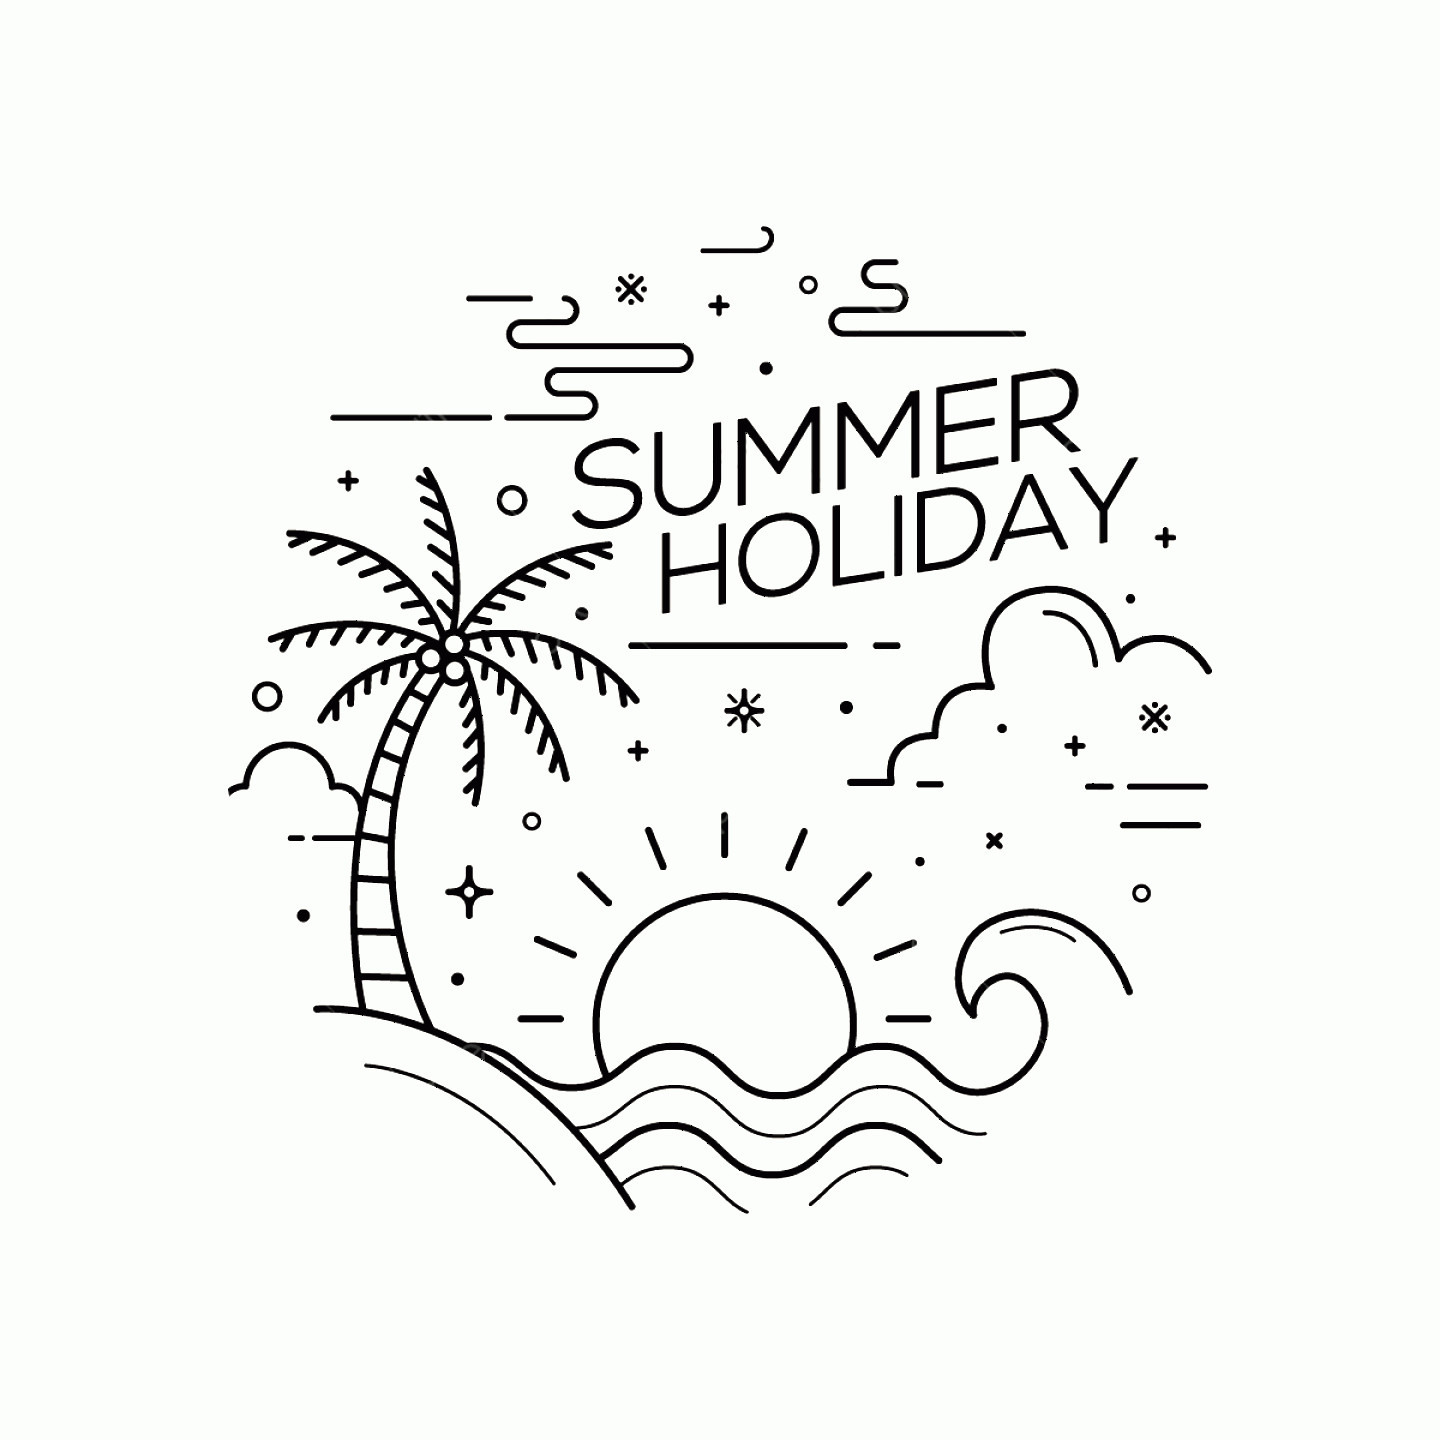 Symbol Vector Clip Art: Summer Holiday Flat Style With Line Art Vector Illustration